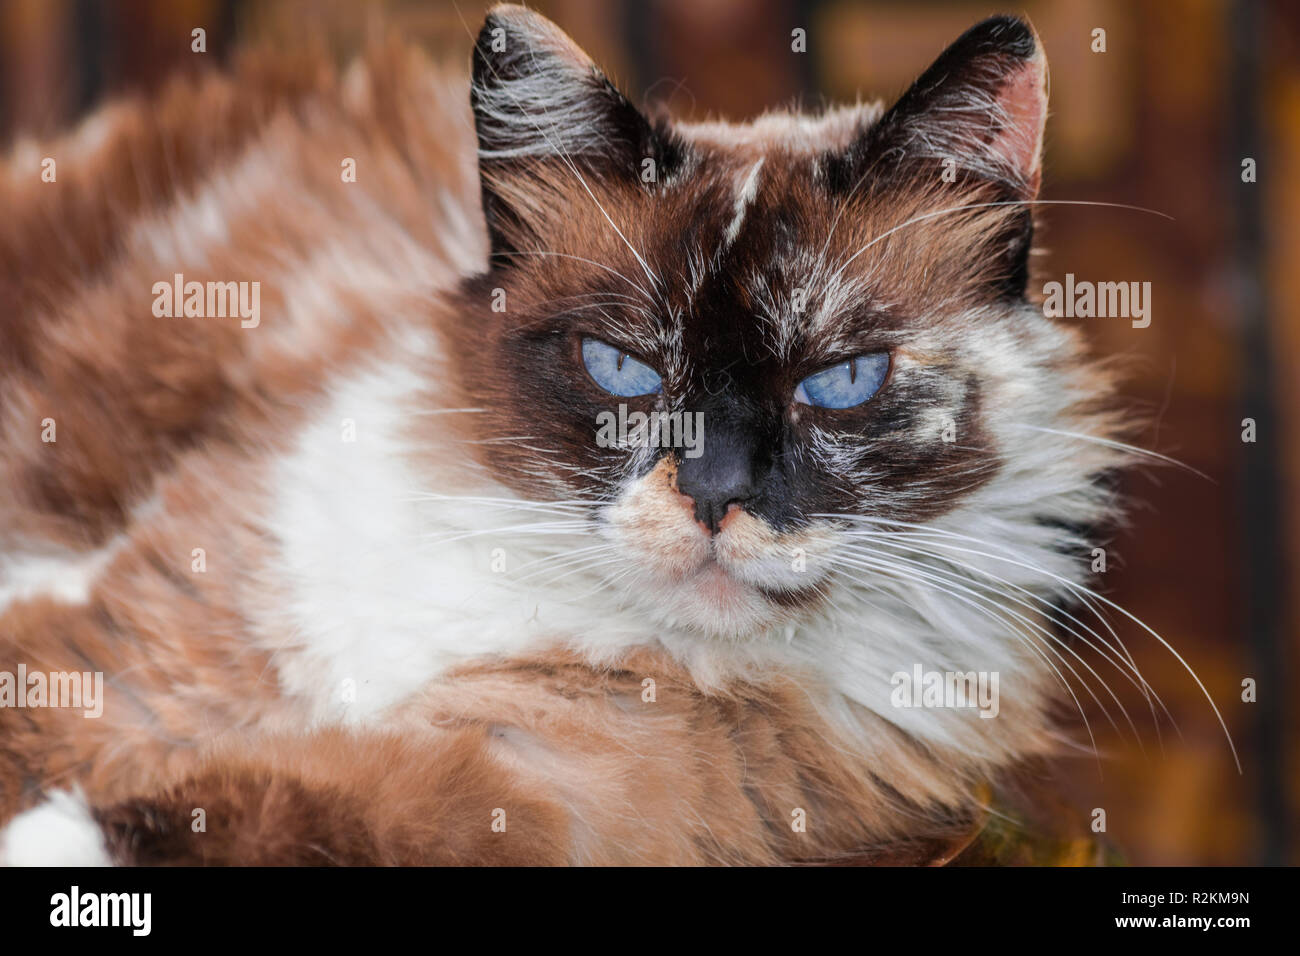 White Brown Long Hair Cat With Blue Eyes Stock Photo Alamy